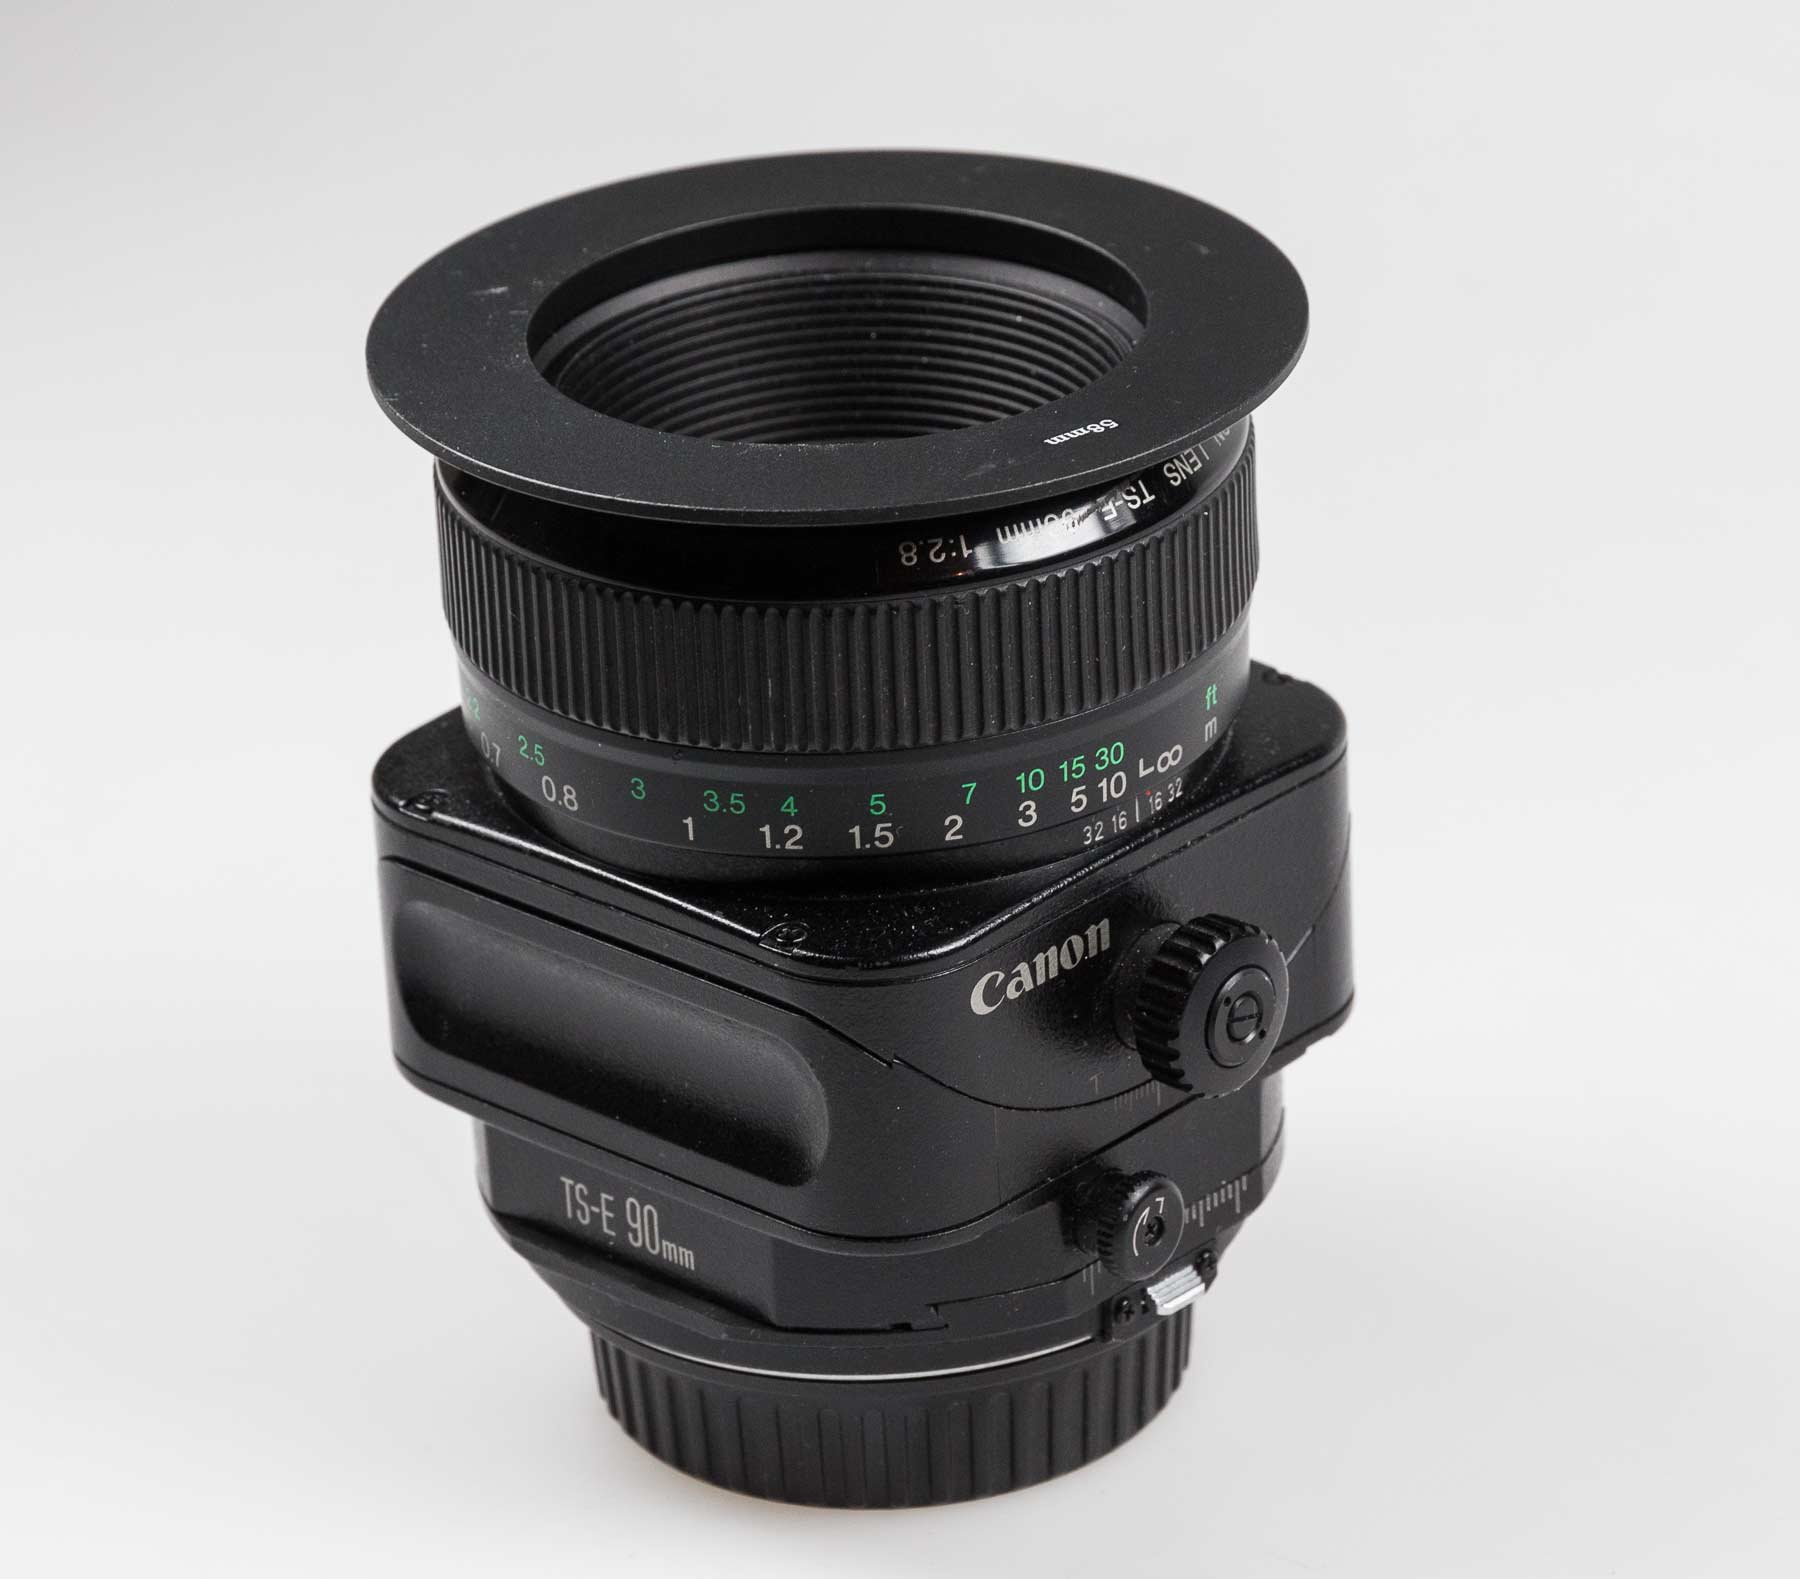 ring-fitted-to-lens